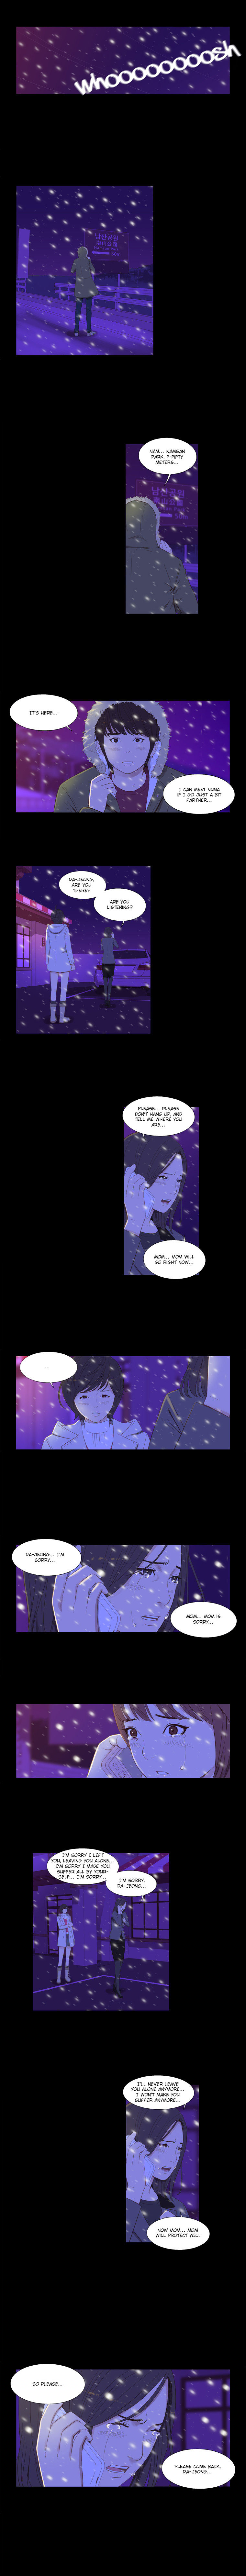 The Friendly Winter 59 Page 2